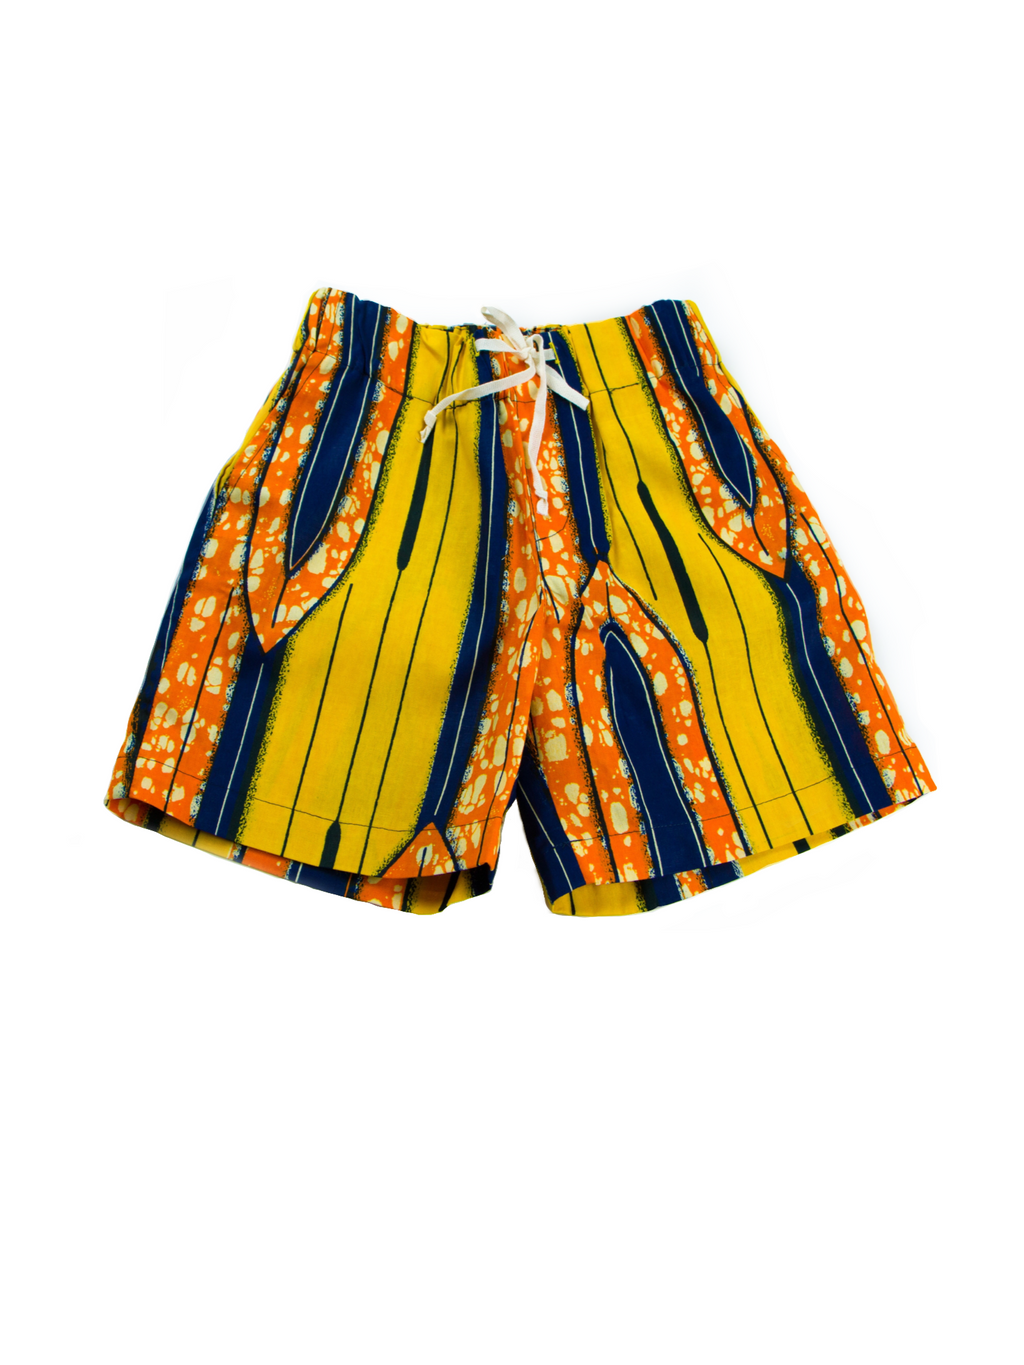 Boys Karter Shorts Surfboard